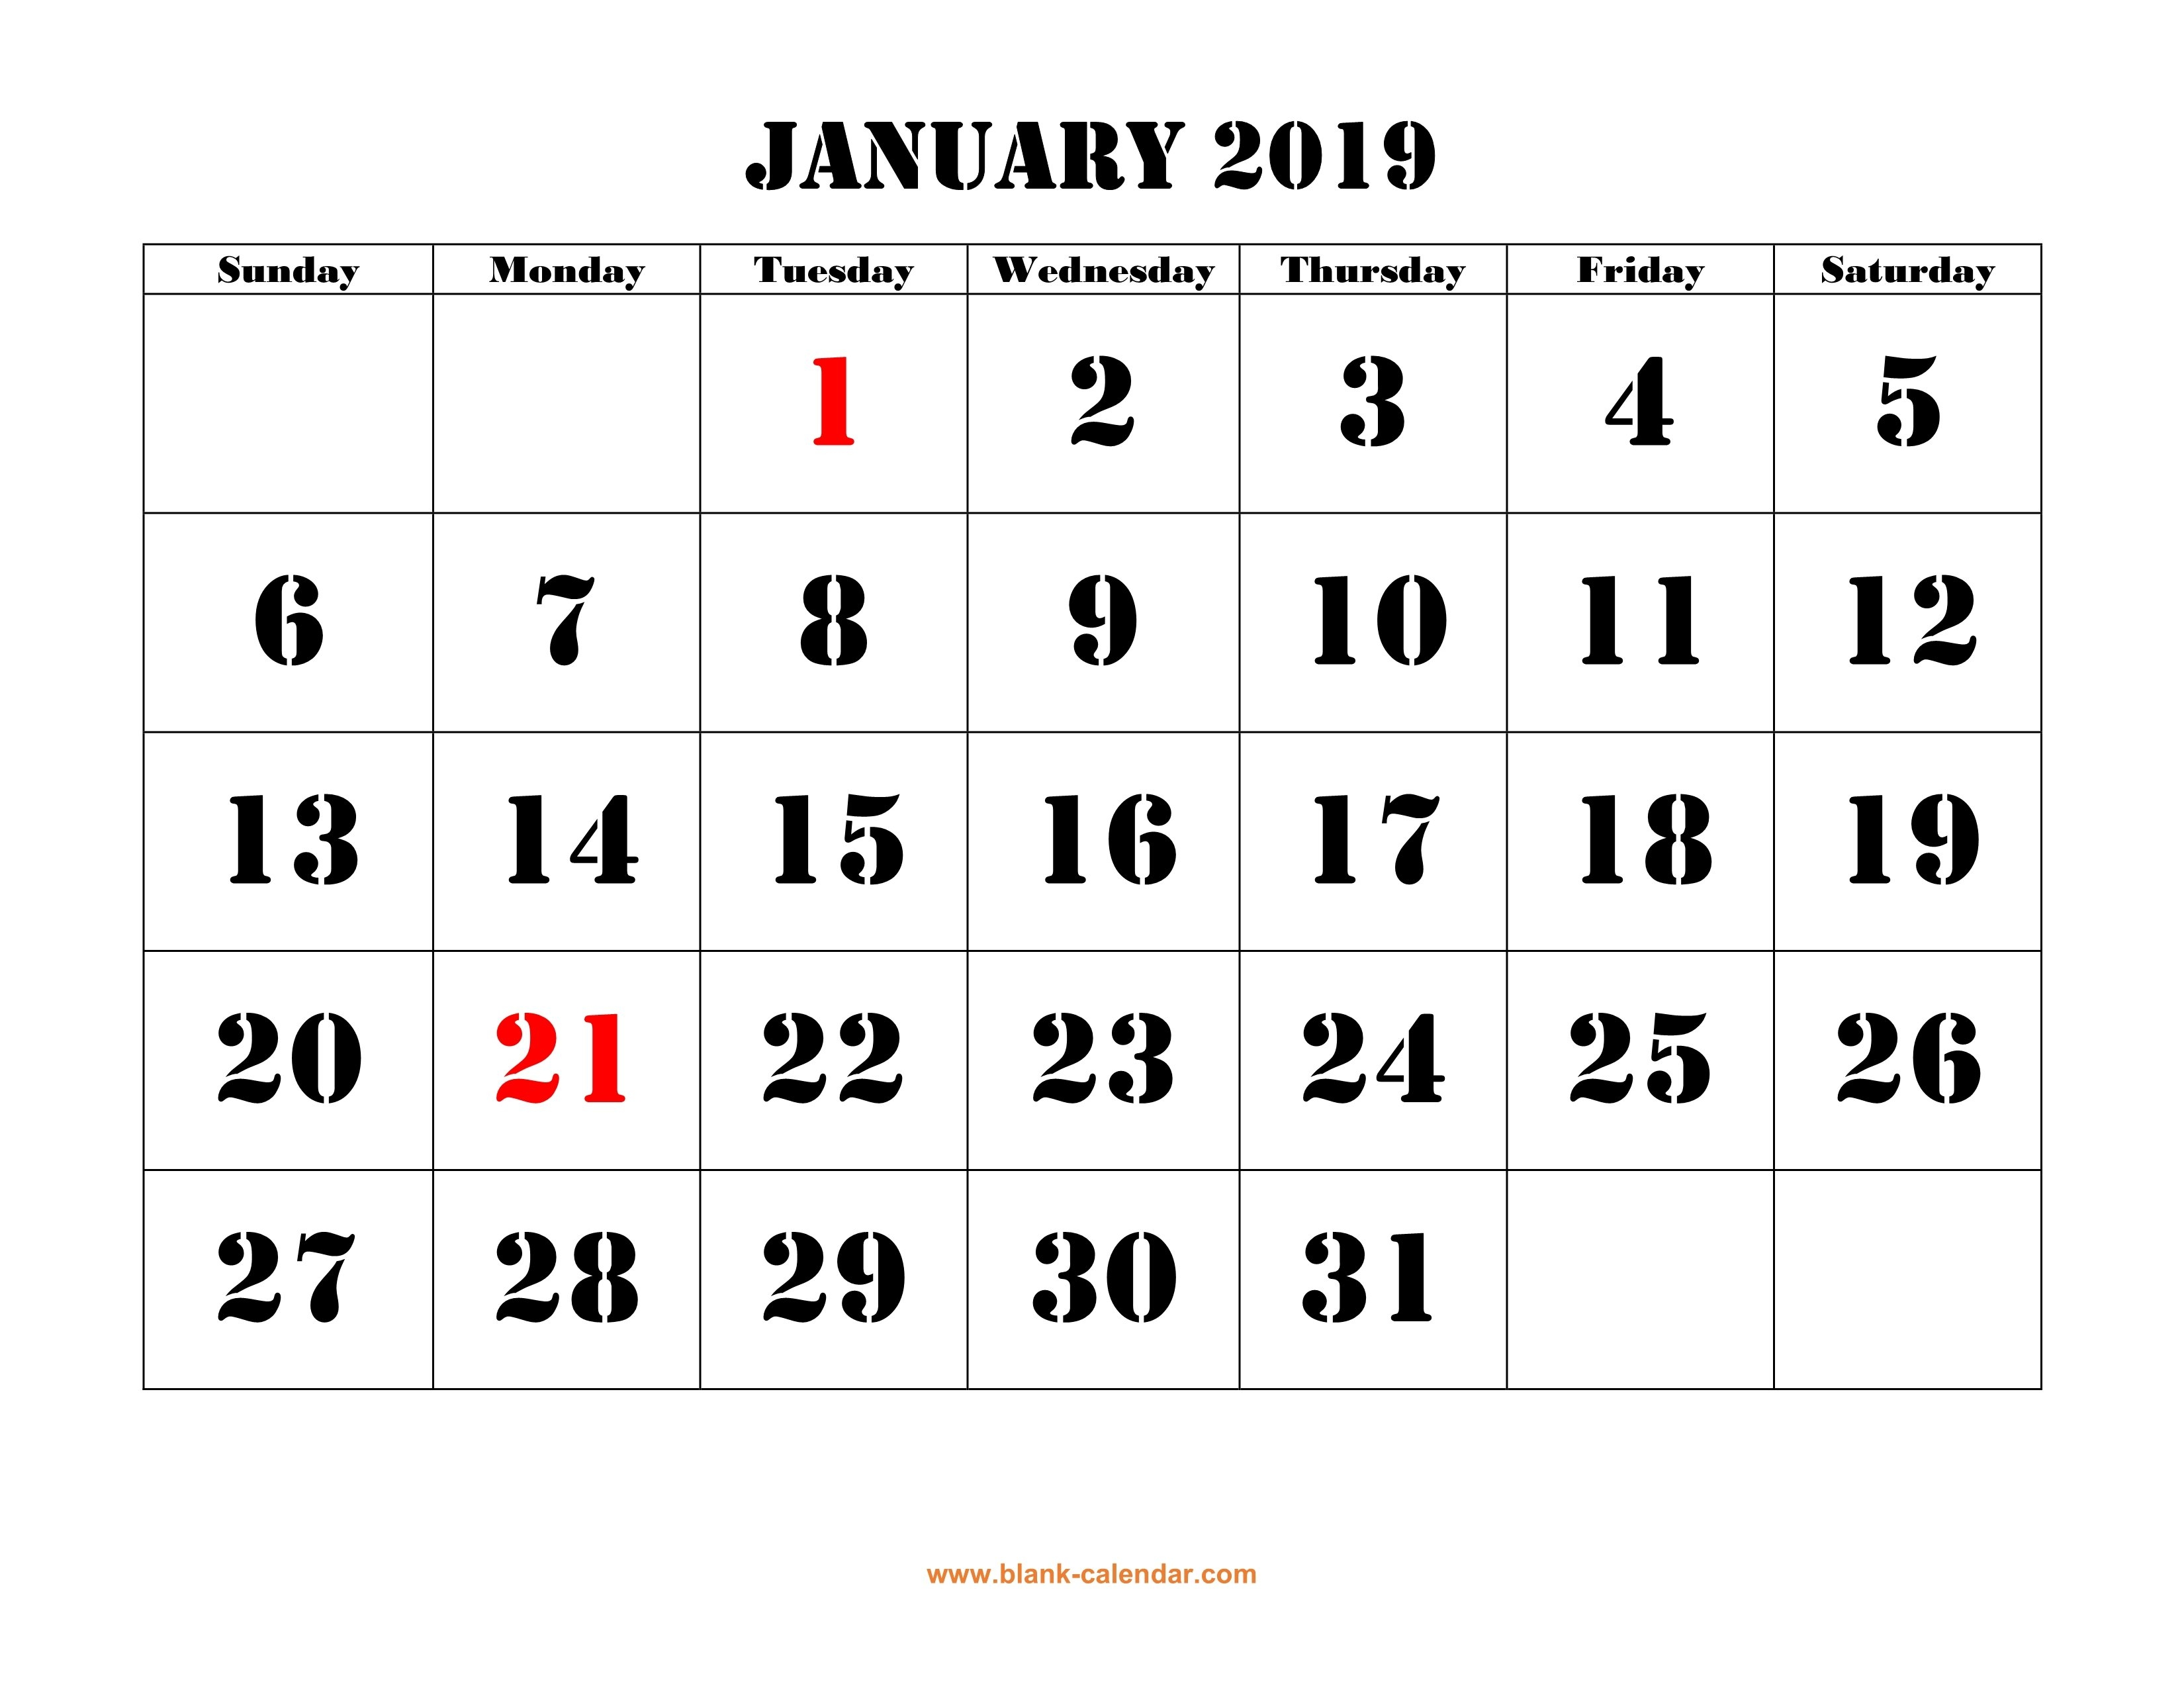 Free Download Printable January 2019 Calendar, Large Font Design Calendar 2019 January With Holidays